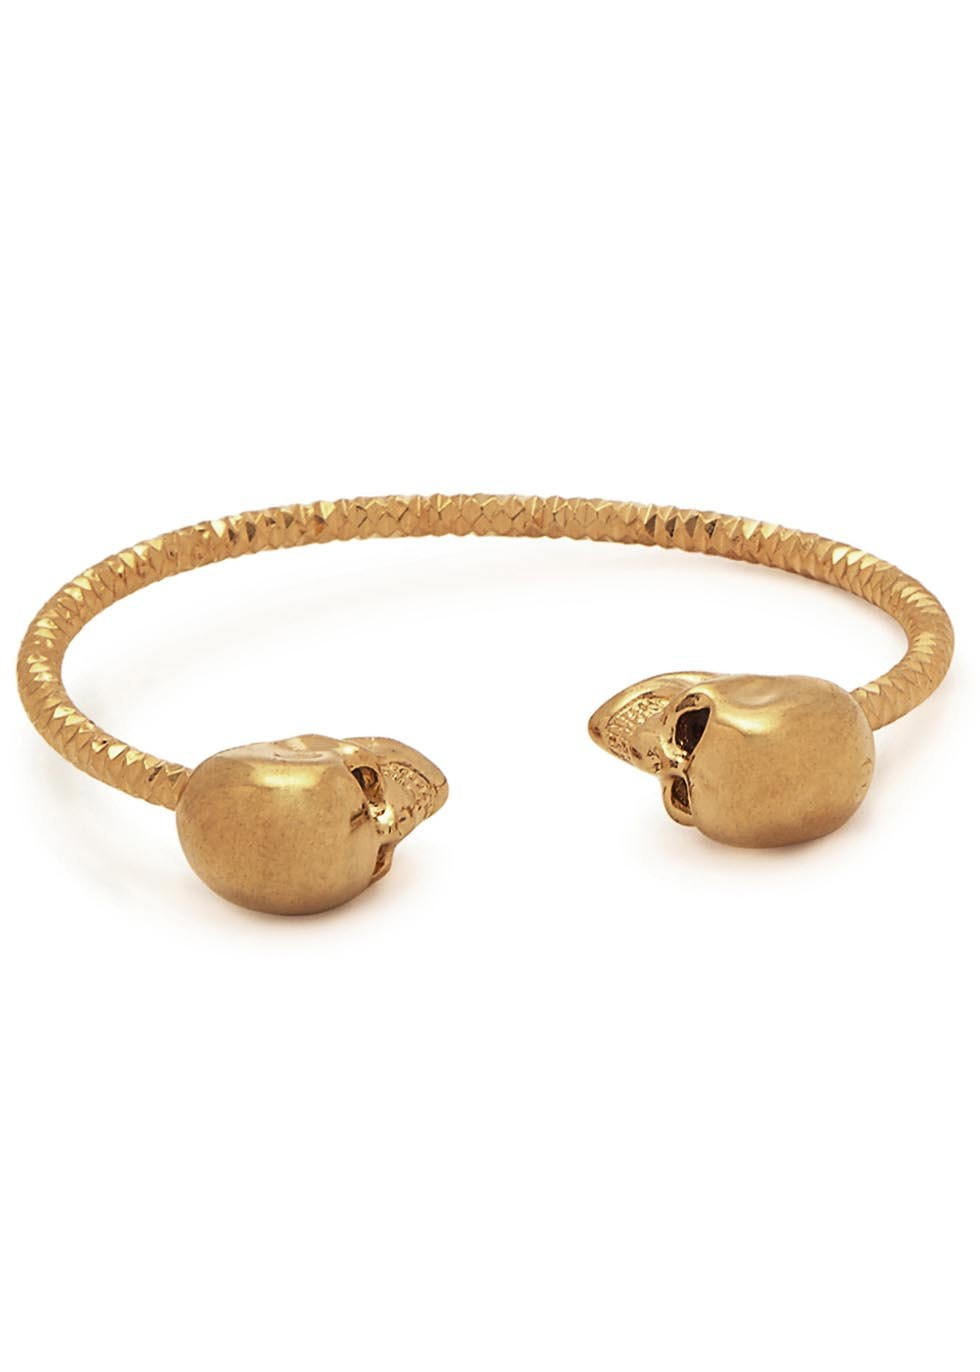 Twin Skull Gold Tone Bracelet - predominant colour: gold; occasions: evening; style: cuff; size: standard; material: chain/metal; finish: metallic; season: a/w 2015; wardrobe: event